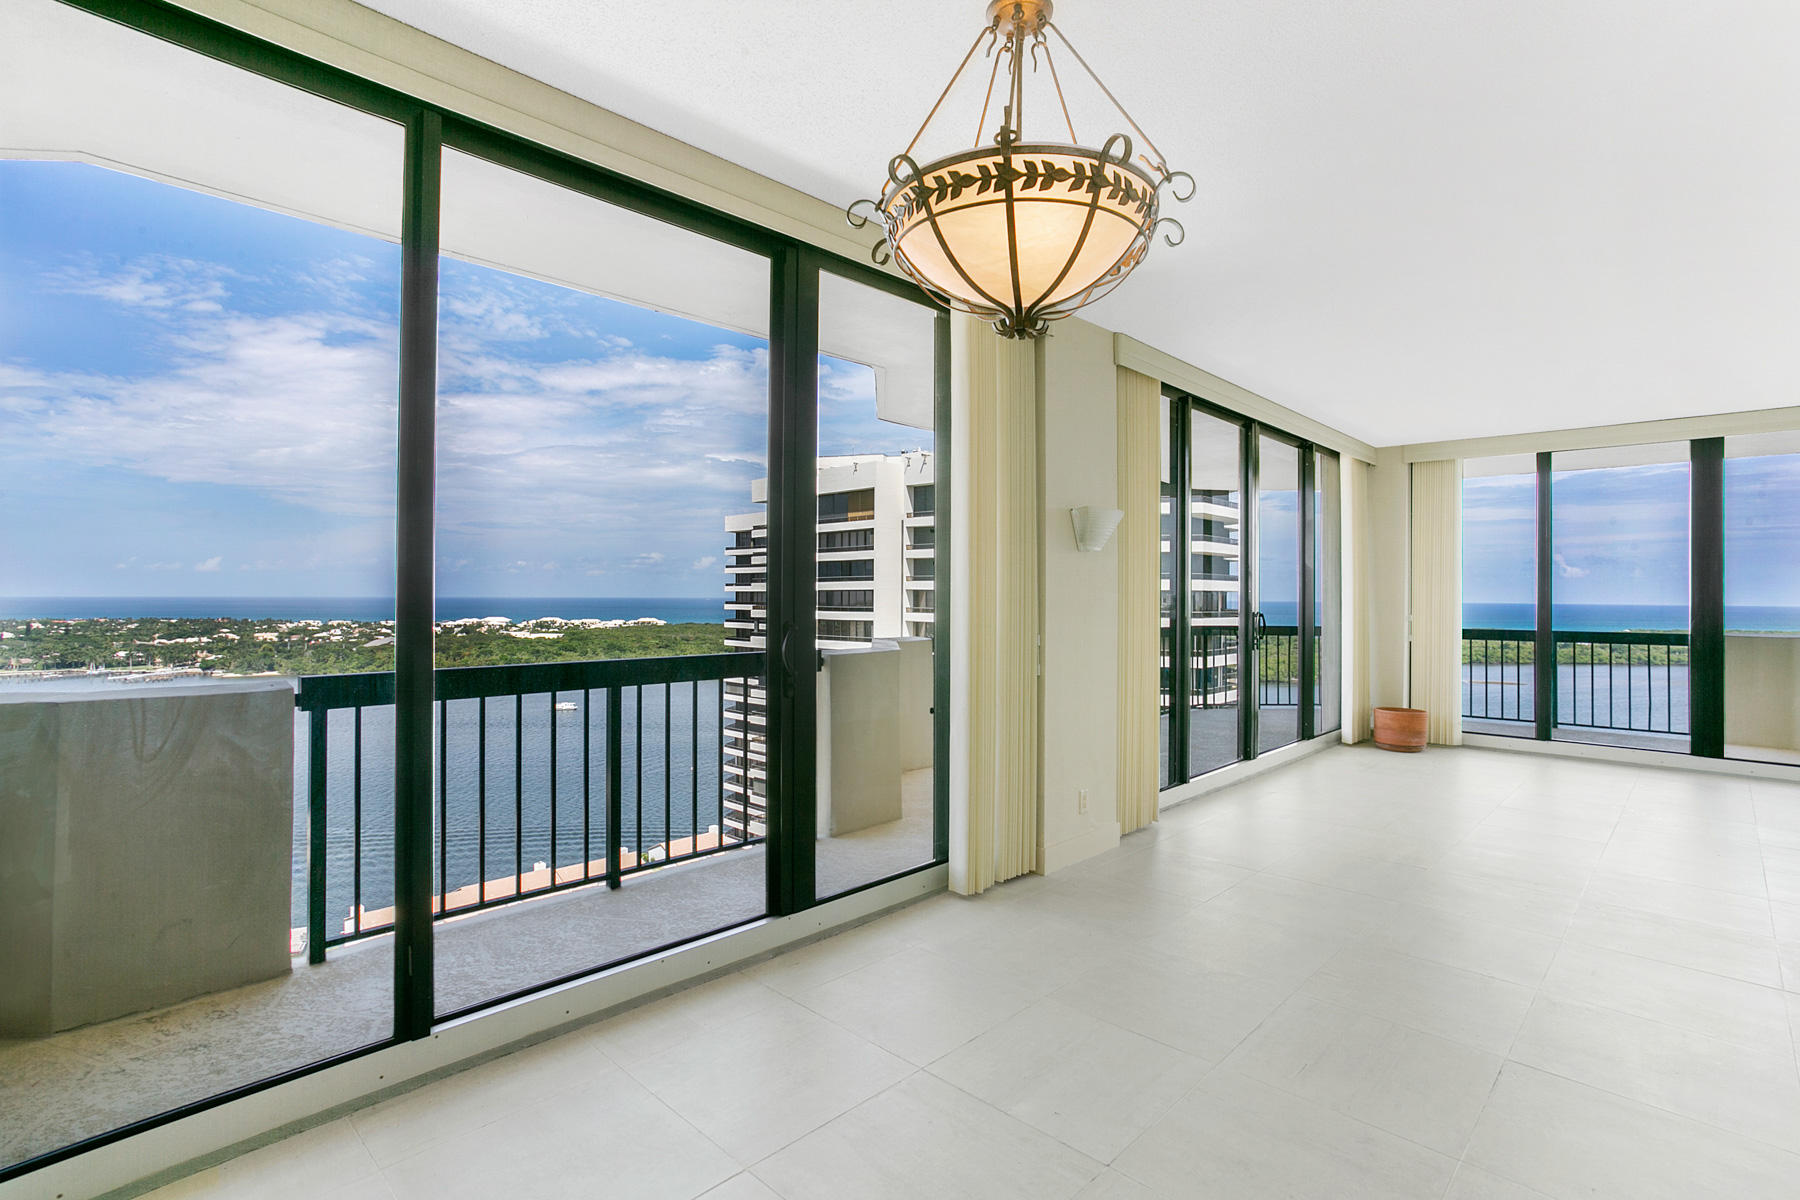 COVE TOWER NORTH PALM BEACH REAL ESTATE